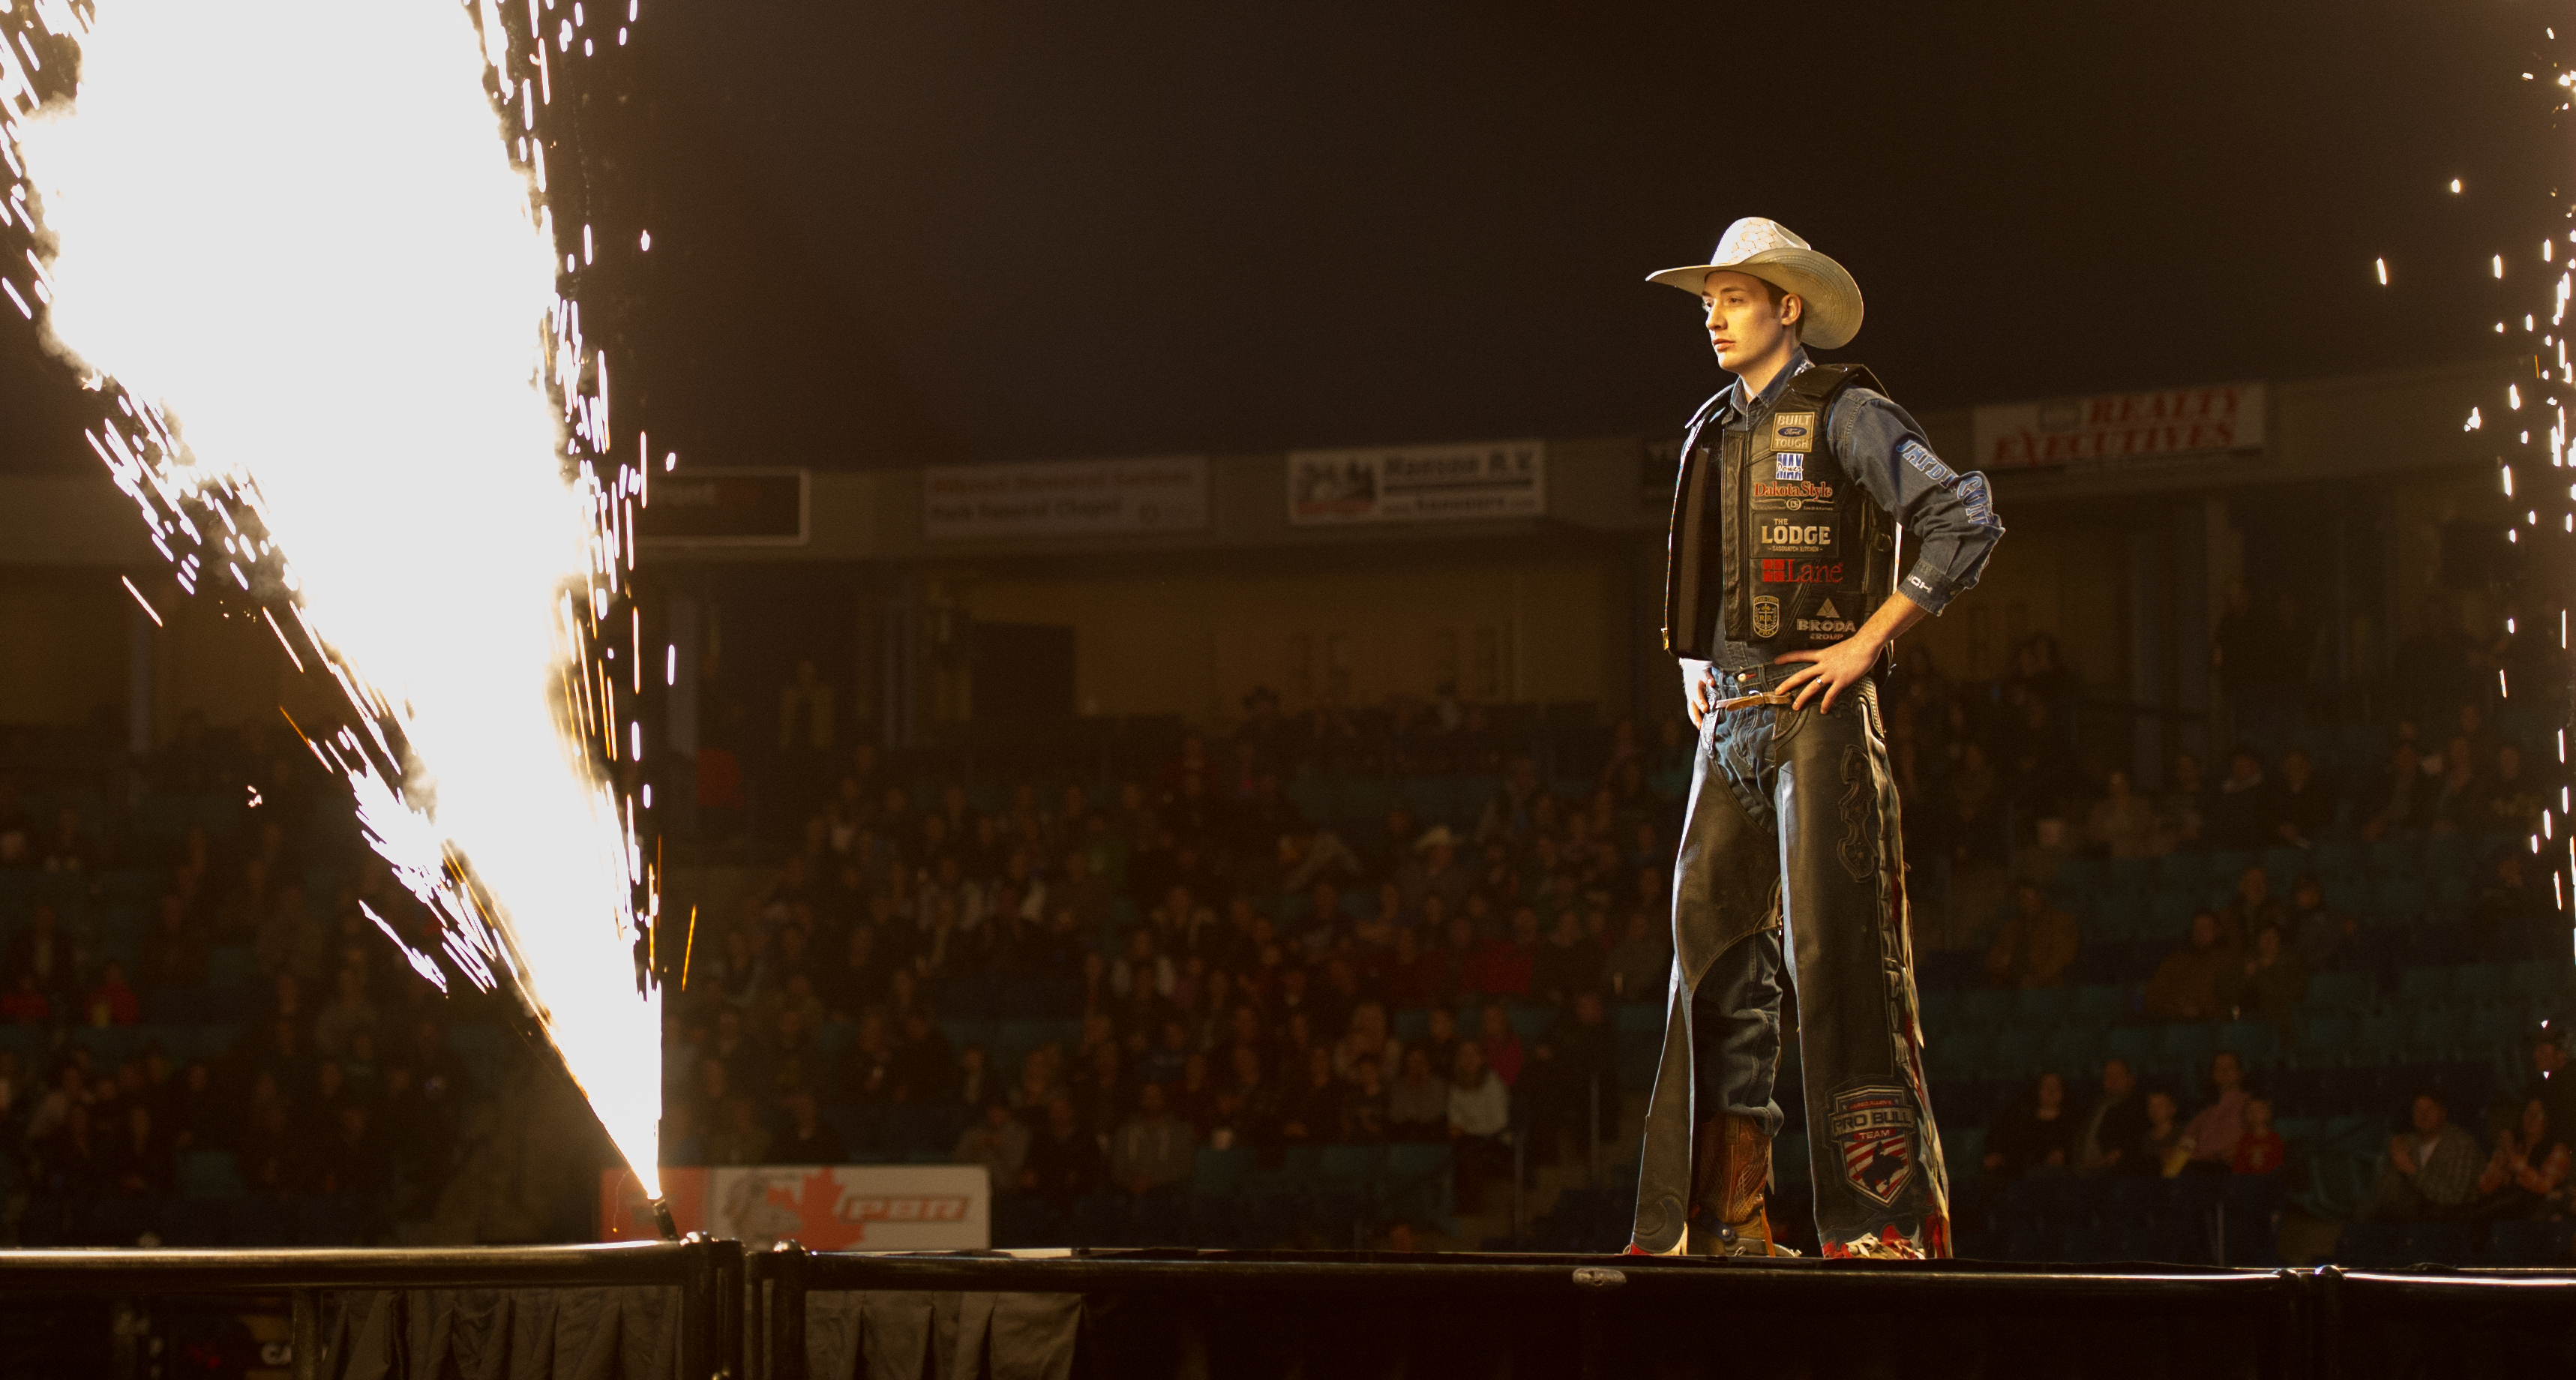 The PBR Finals at the Sask Tel Centre Saskatoon, Saskatchewan, Canada, November 20, 2015